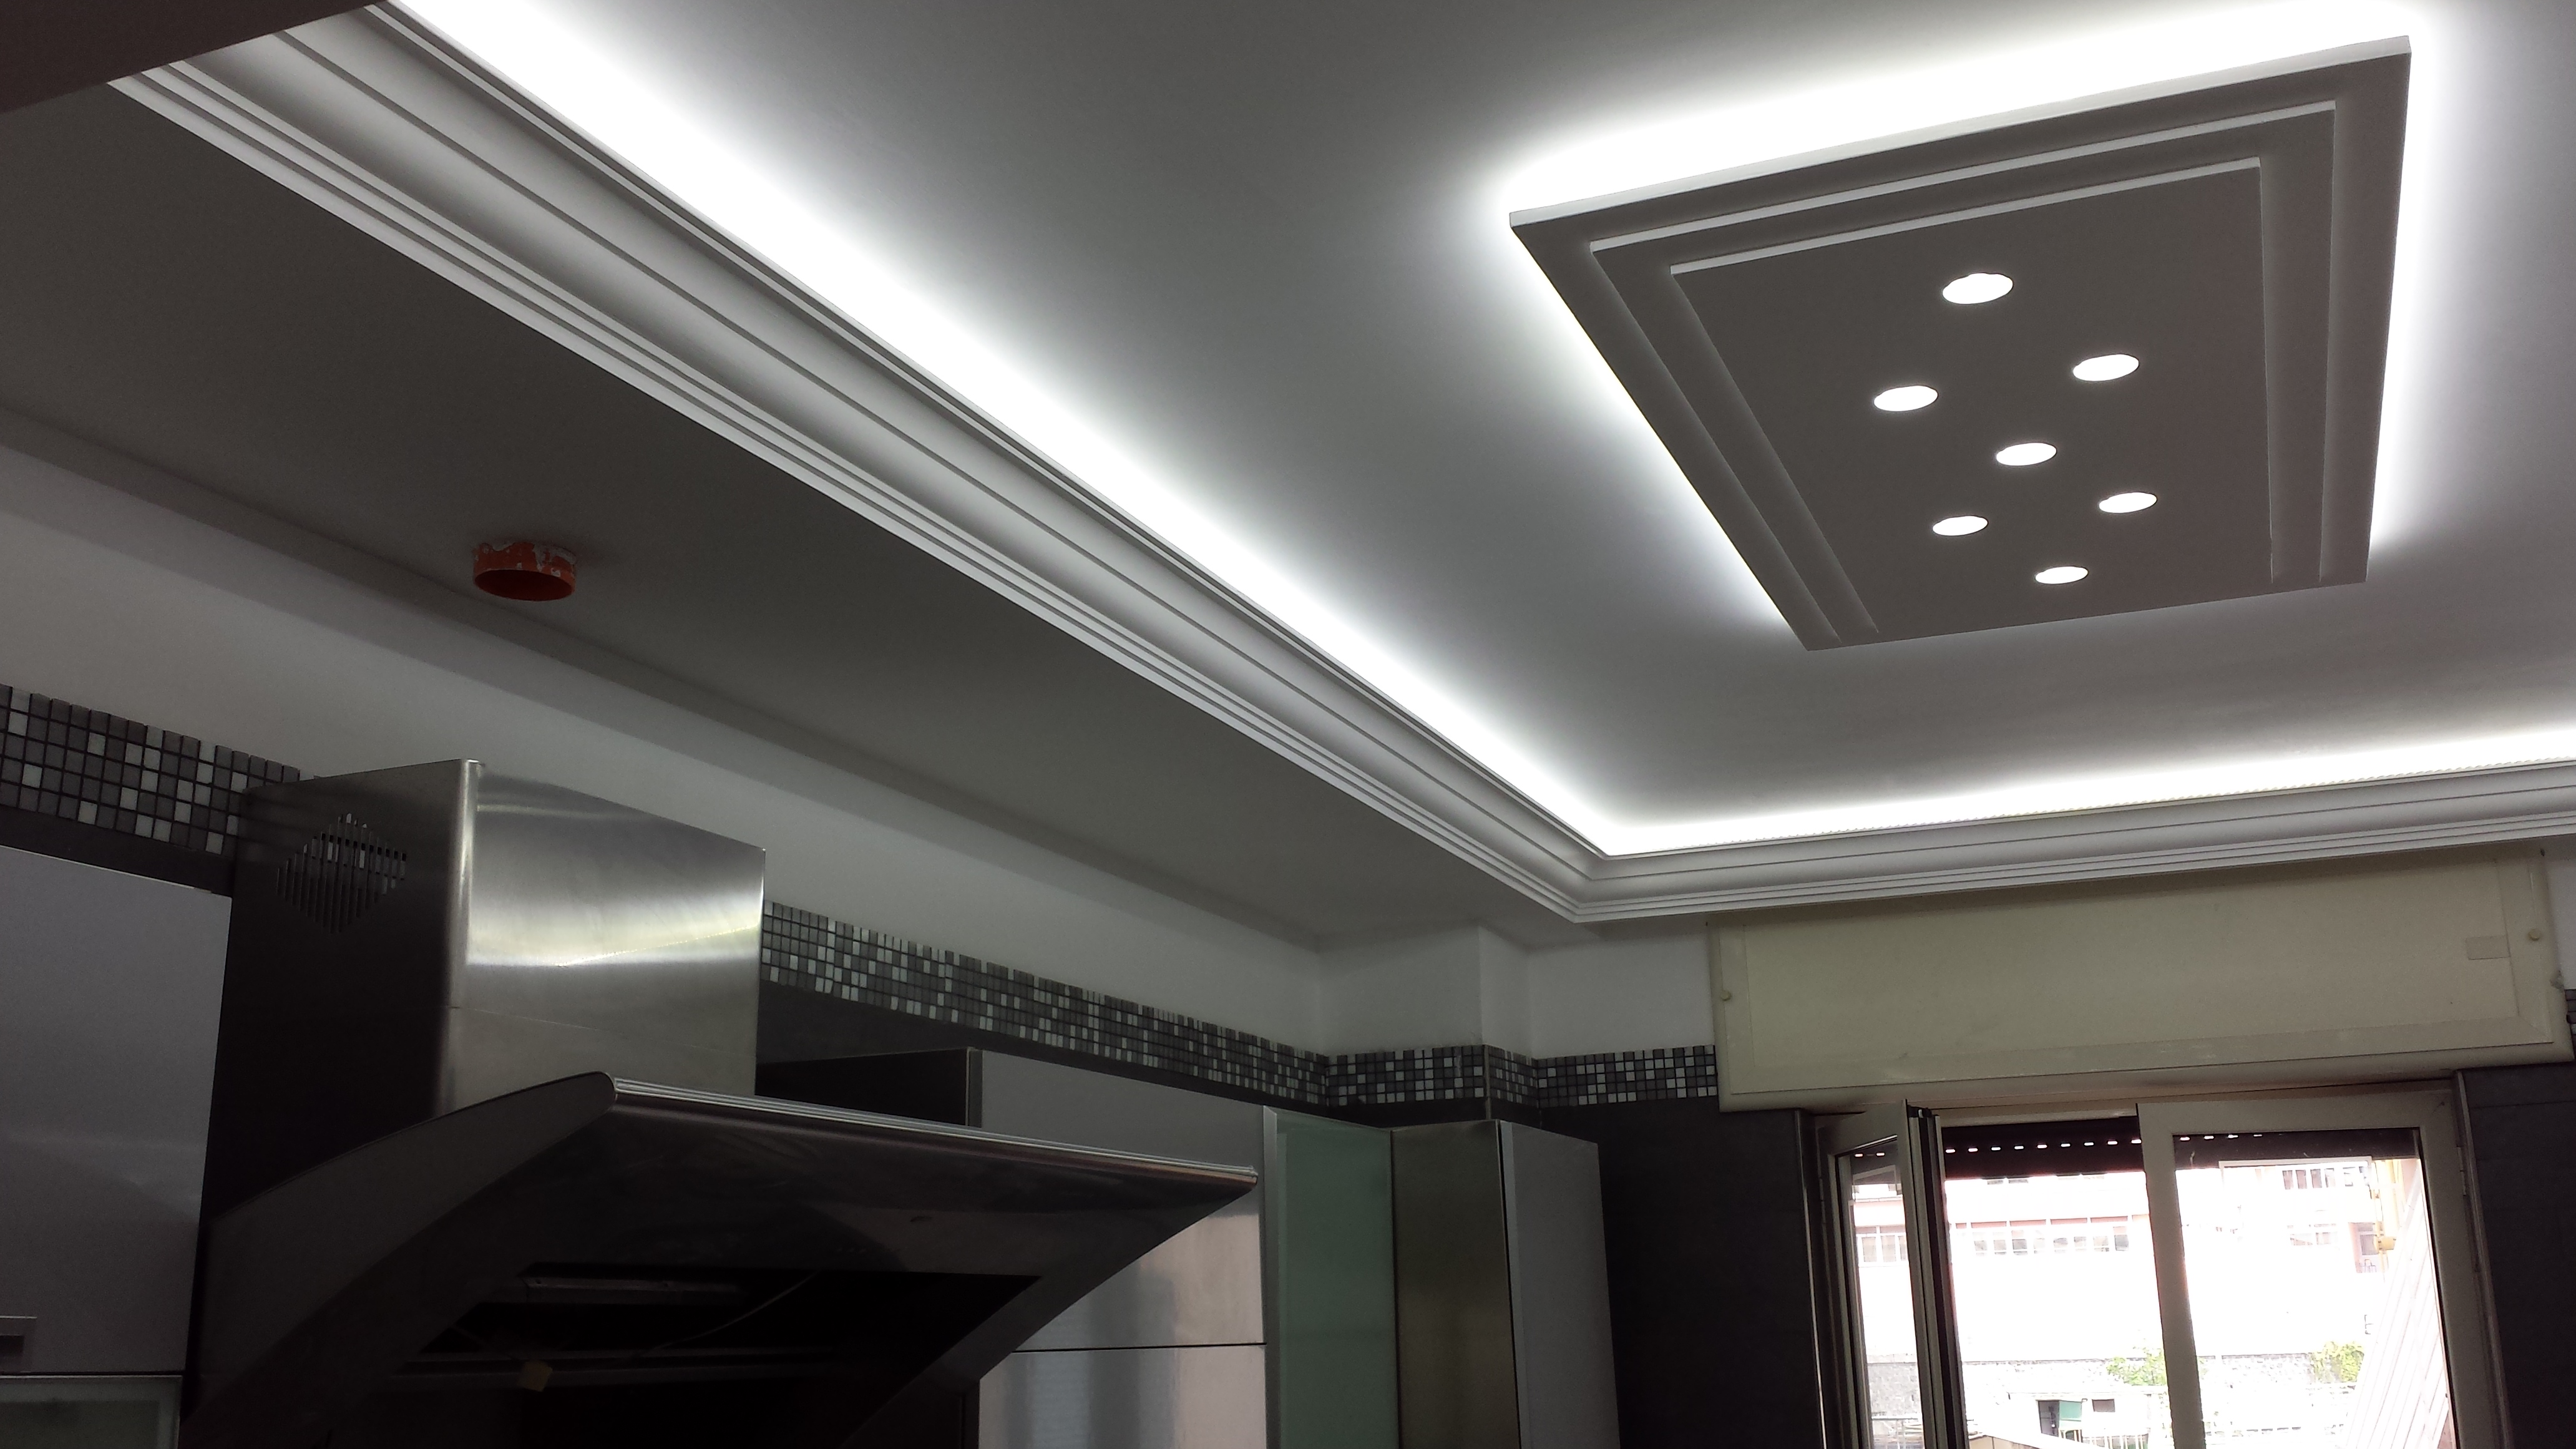 Esempi di diffusori luce in gesso stucchi sorrentino for Led controsoffitto